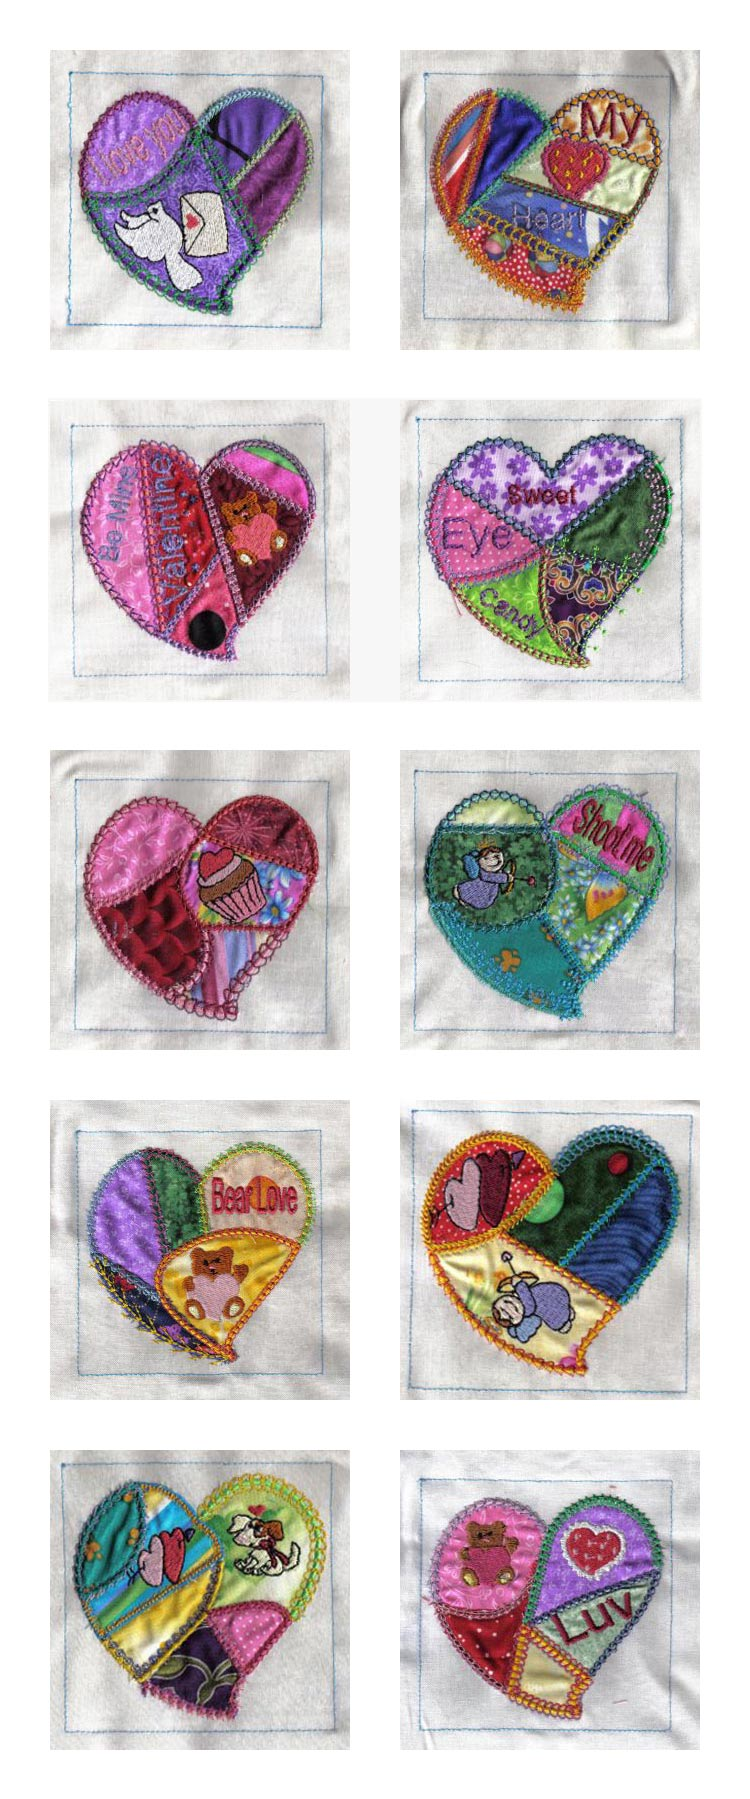 Crazy Quilt Applique Hearts Embroidery Machine Design Details Applique Quilt Patterns For Embroidery Machine